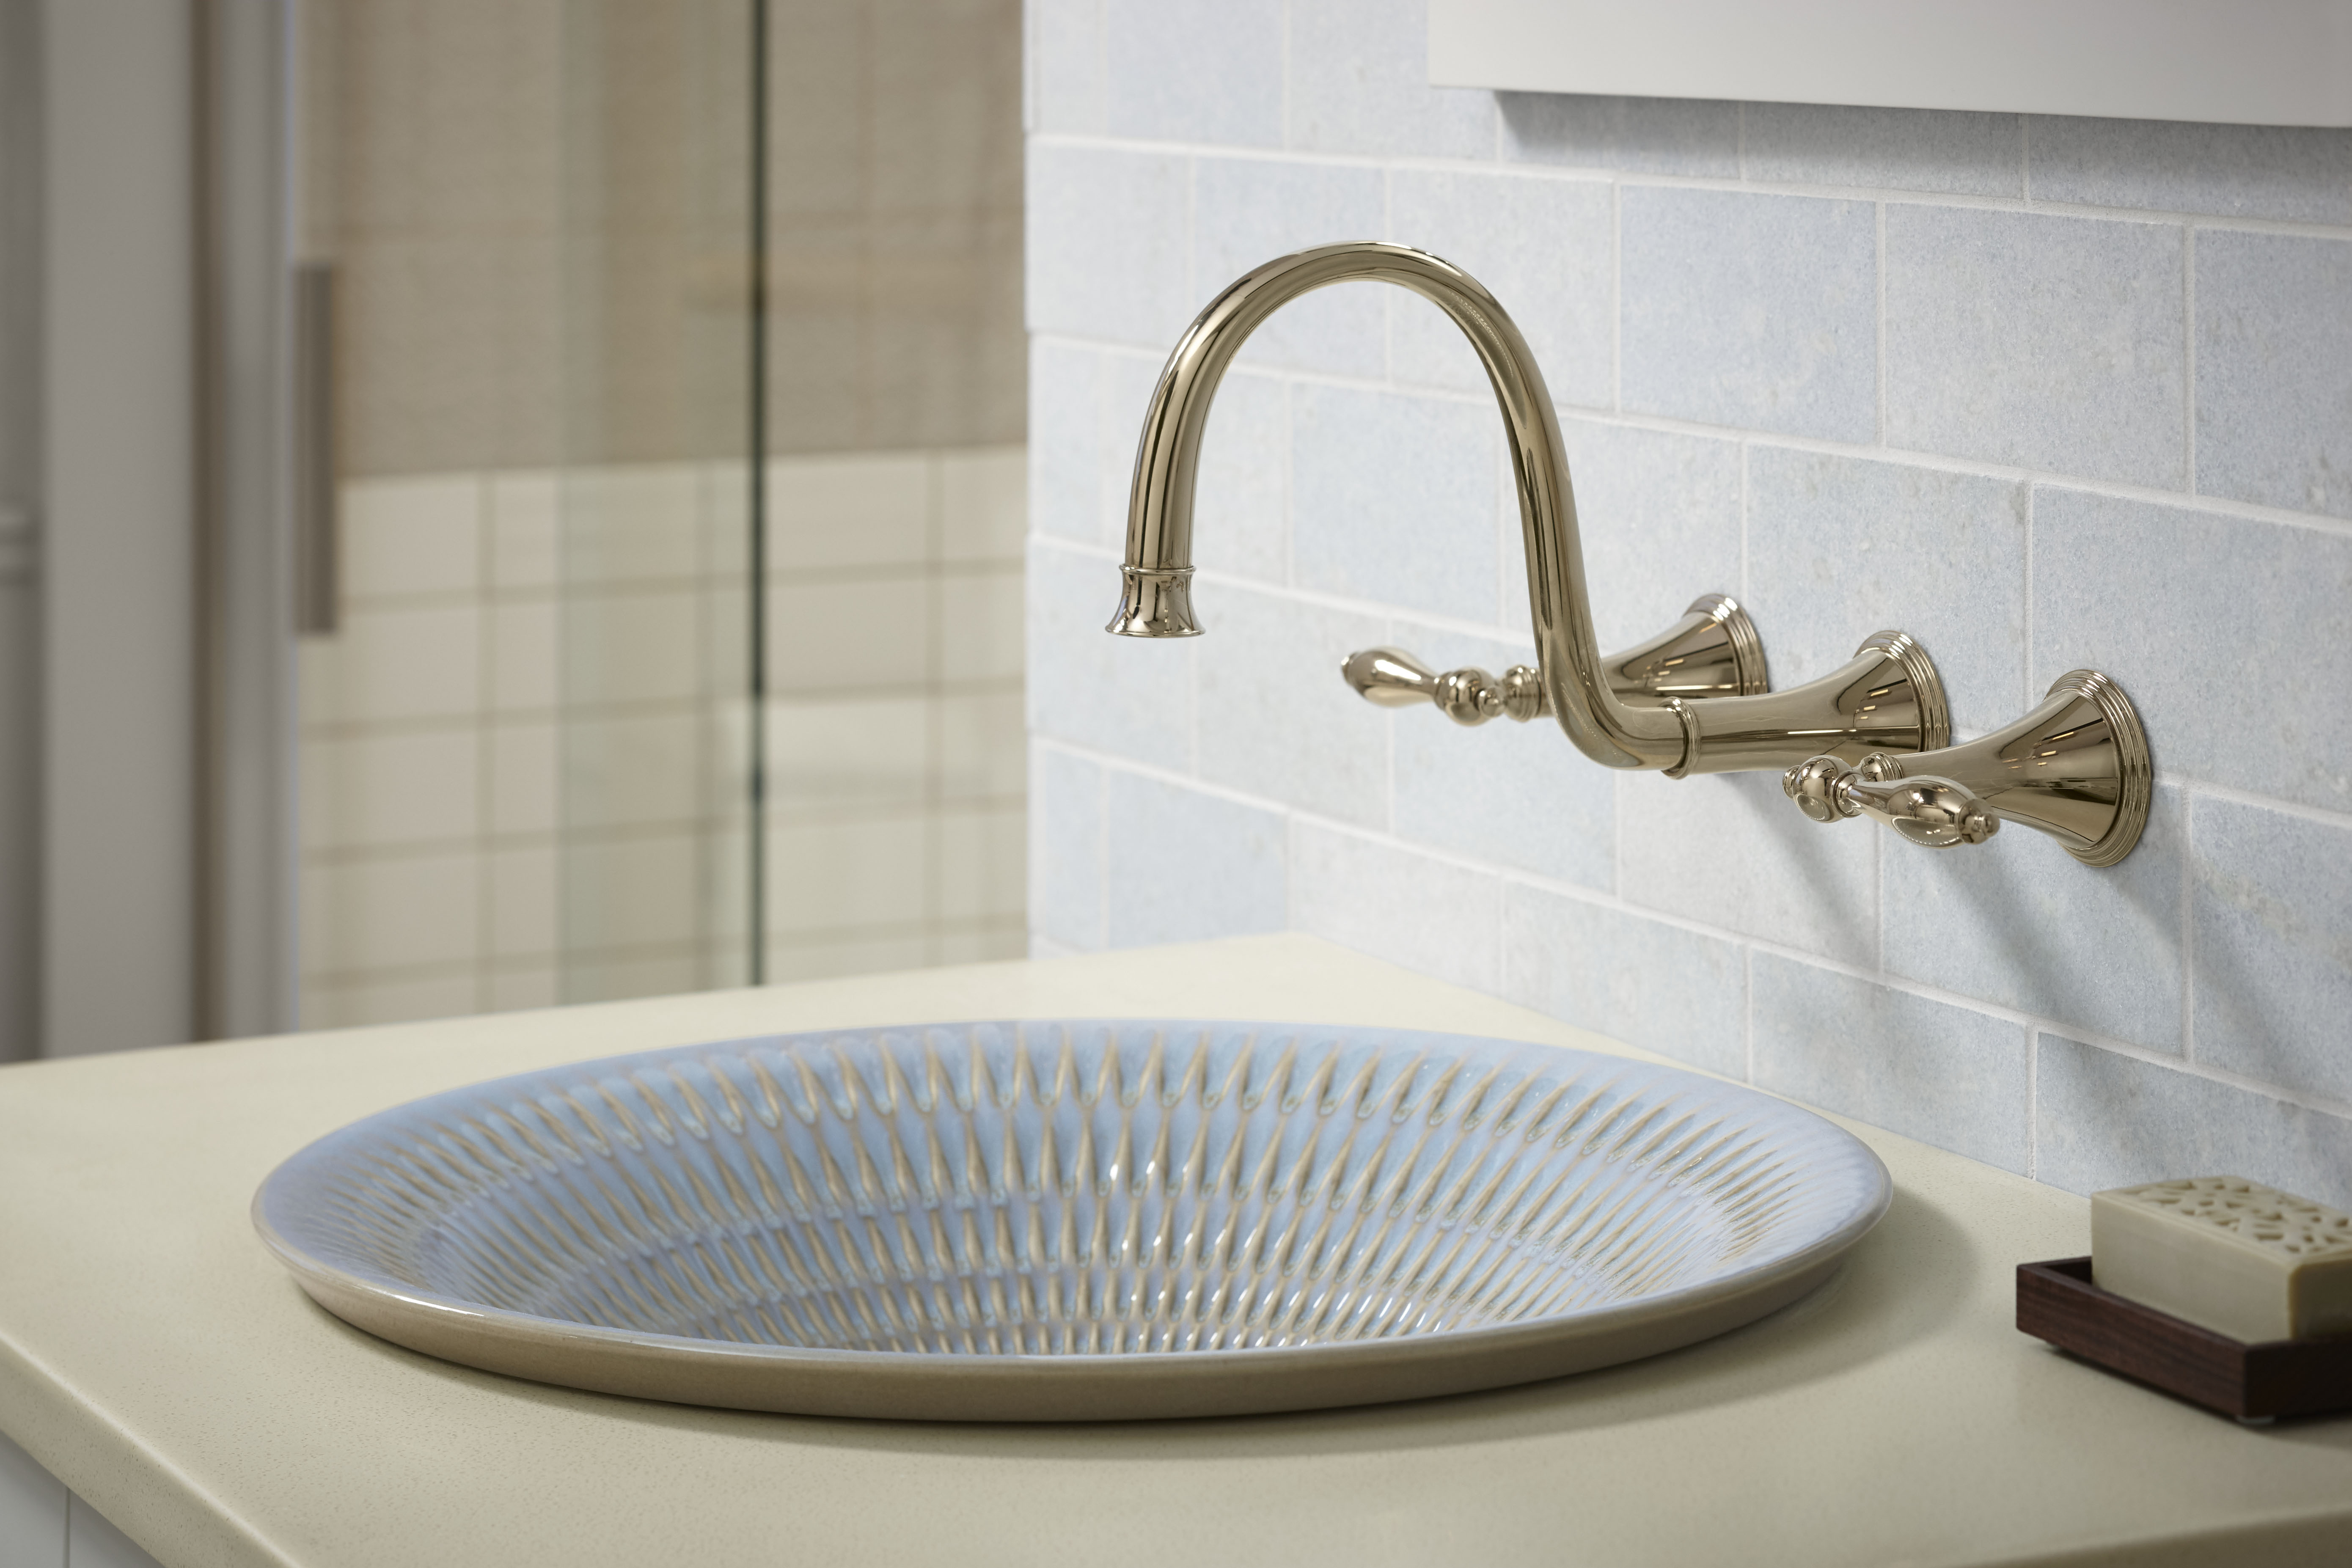 Finial Traditional Faucet     Derring Sink     The subtle warmth of this French Gold wall-mount faucet complements the sink's neutral blue and cream tones.